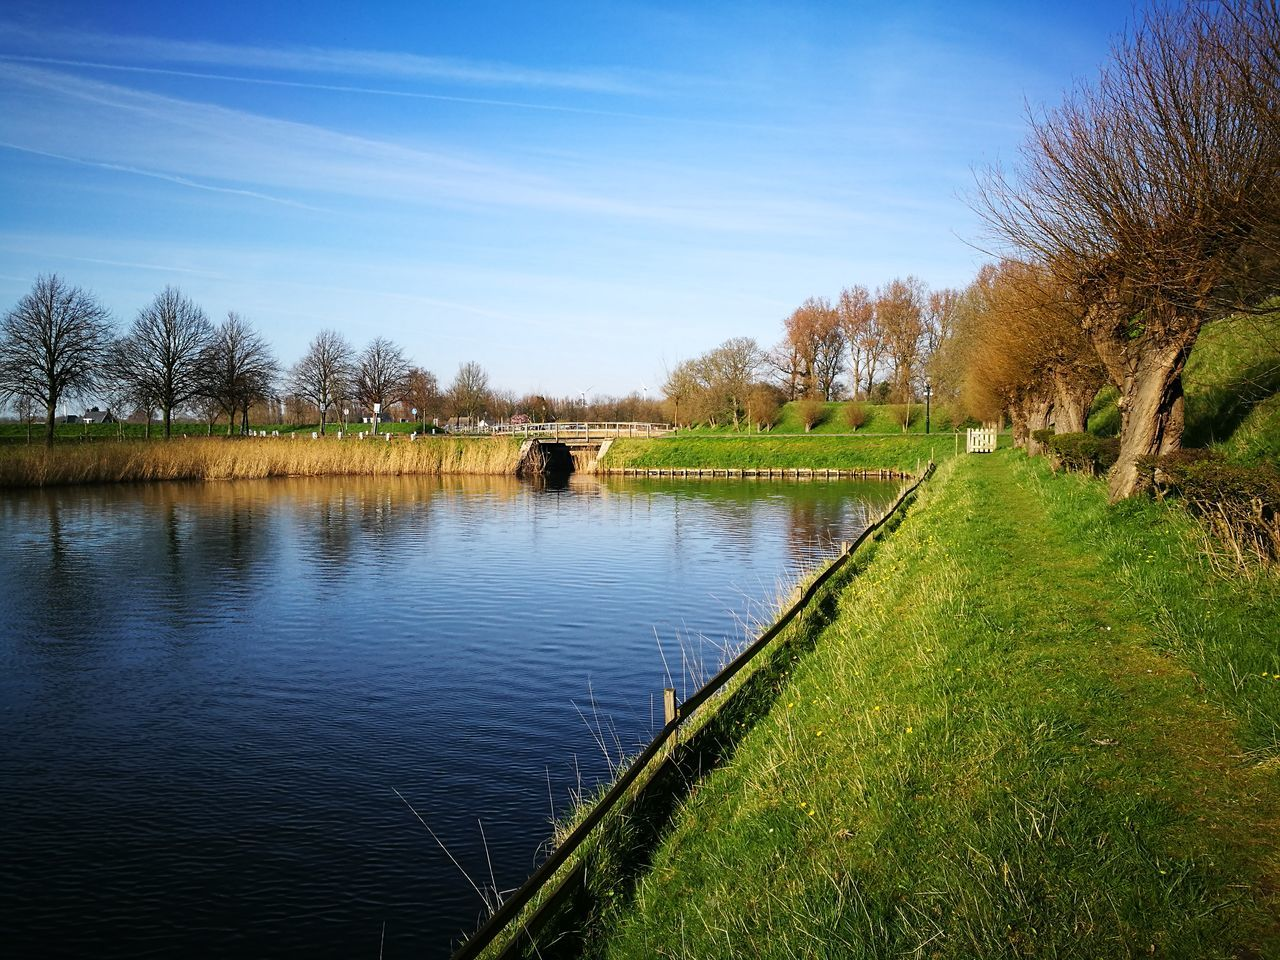 Rustic Water Outdoors Nature Tranquility Landscape Scenics Beauty In Nature No People Rural Scene Countryside Countryfield Rustic Style Beauty In Nature Nature Dutch Dutch Landscape Dutch Landscapes Dutch Countyside Dutch Canals Farmland